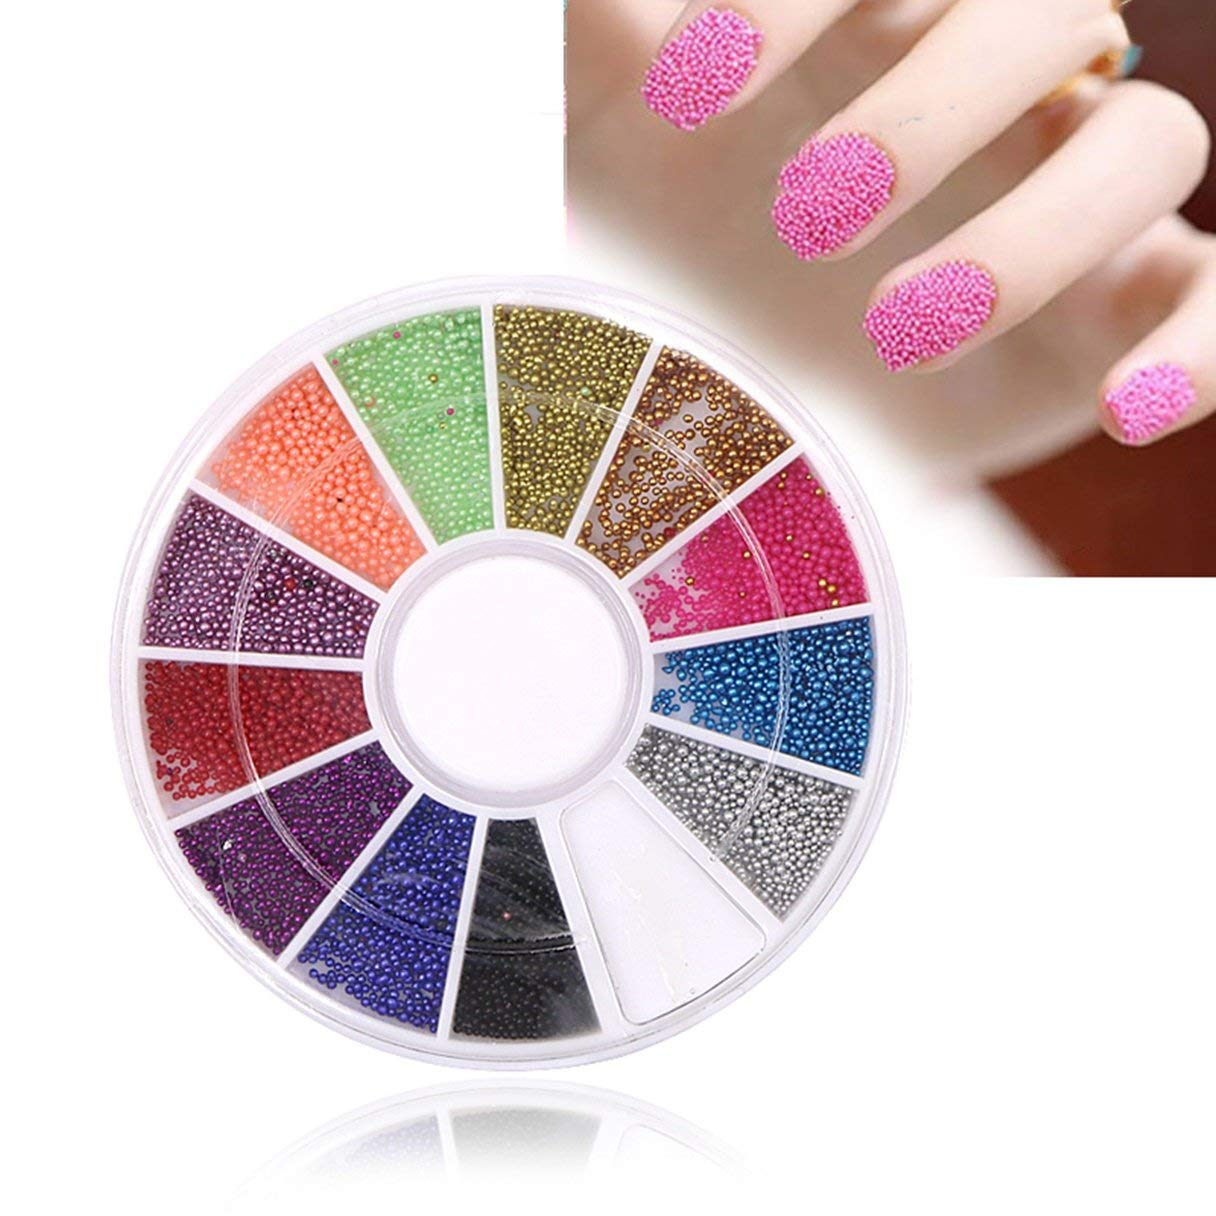 Get Quotations · 1 Sets 12-Colors Acrylic Glitter Nail Art Rhinestone In  Wheel 3D Round Beads Decoration 1c89bd605a18